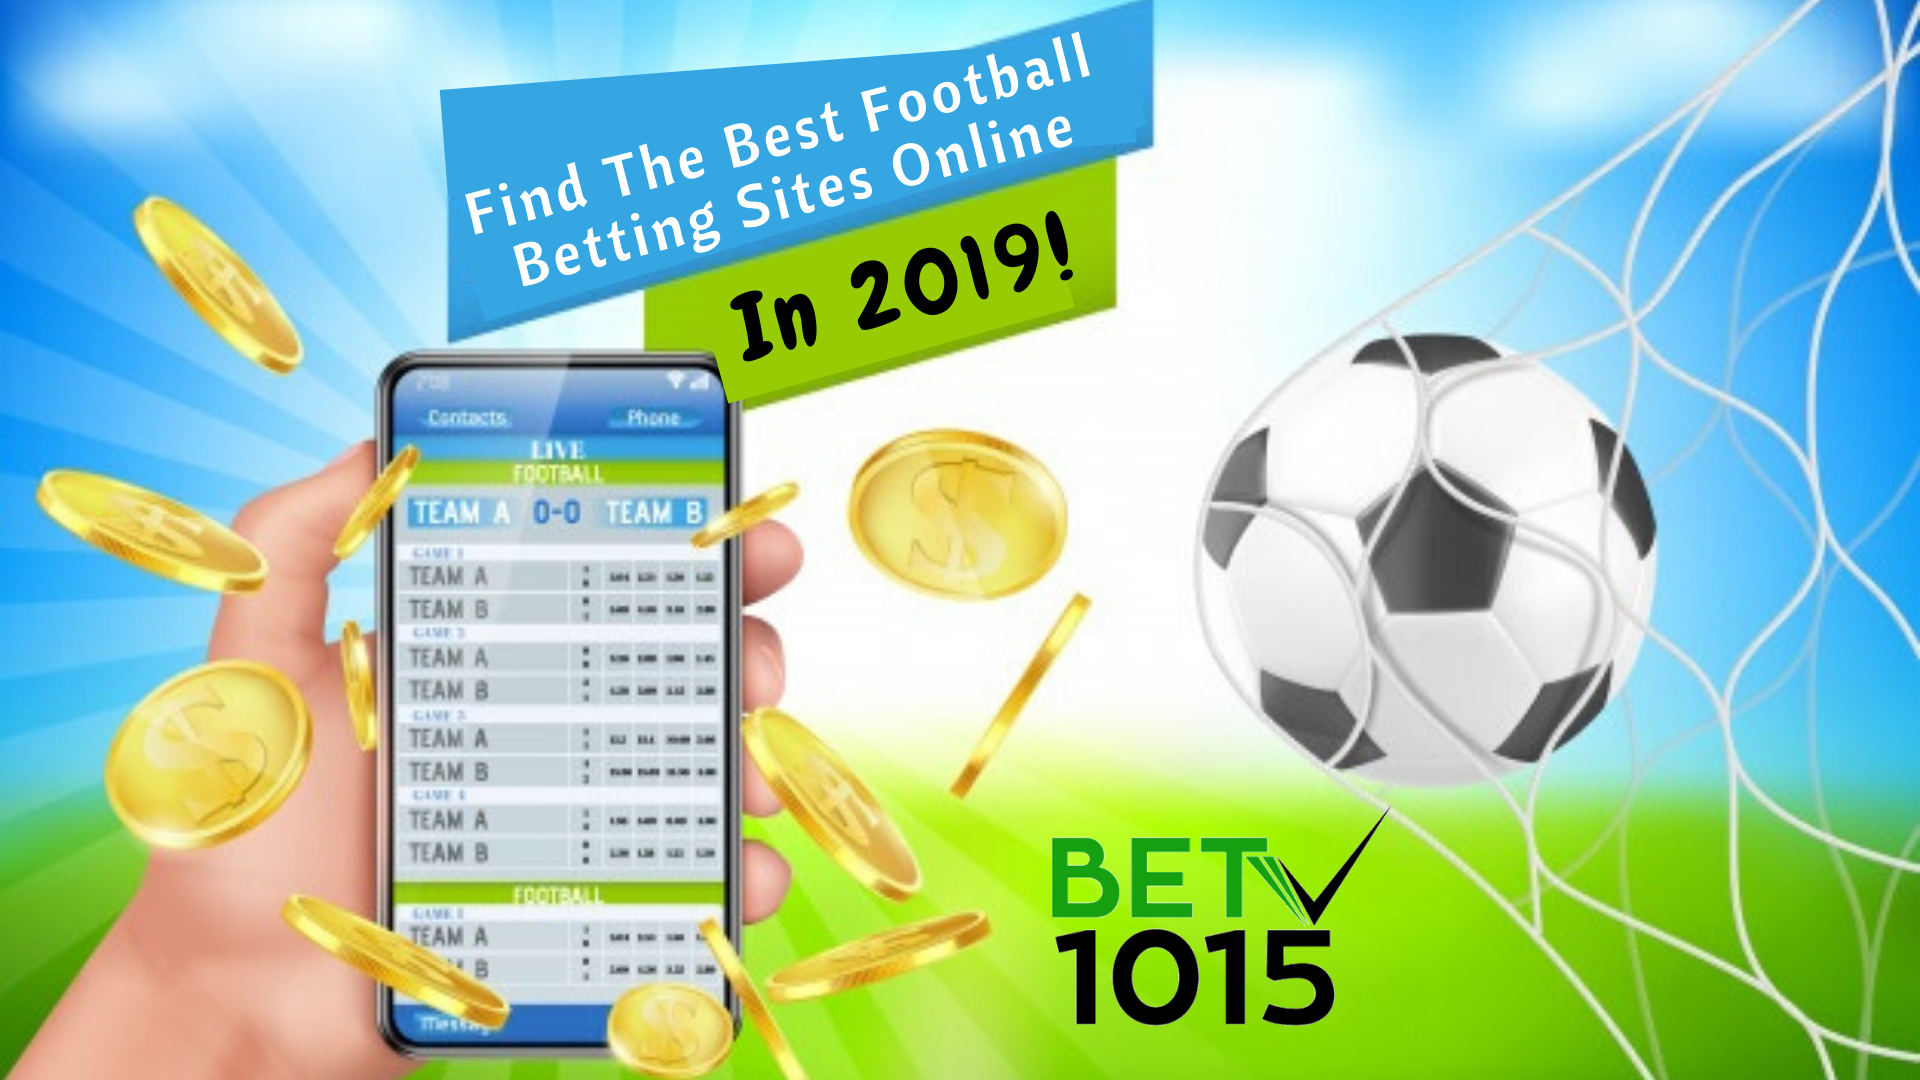 Football online betting site sports betting legal in india